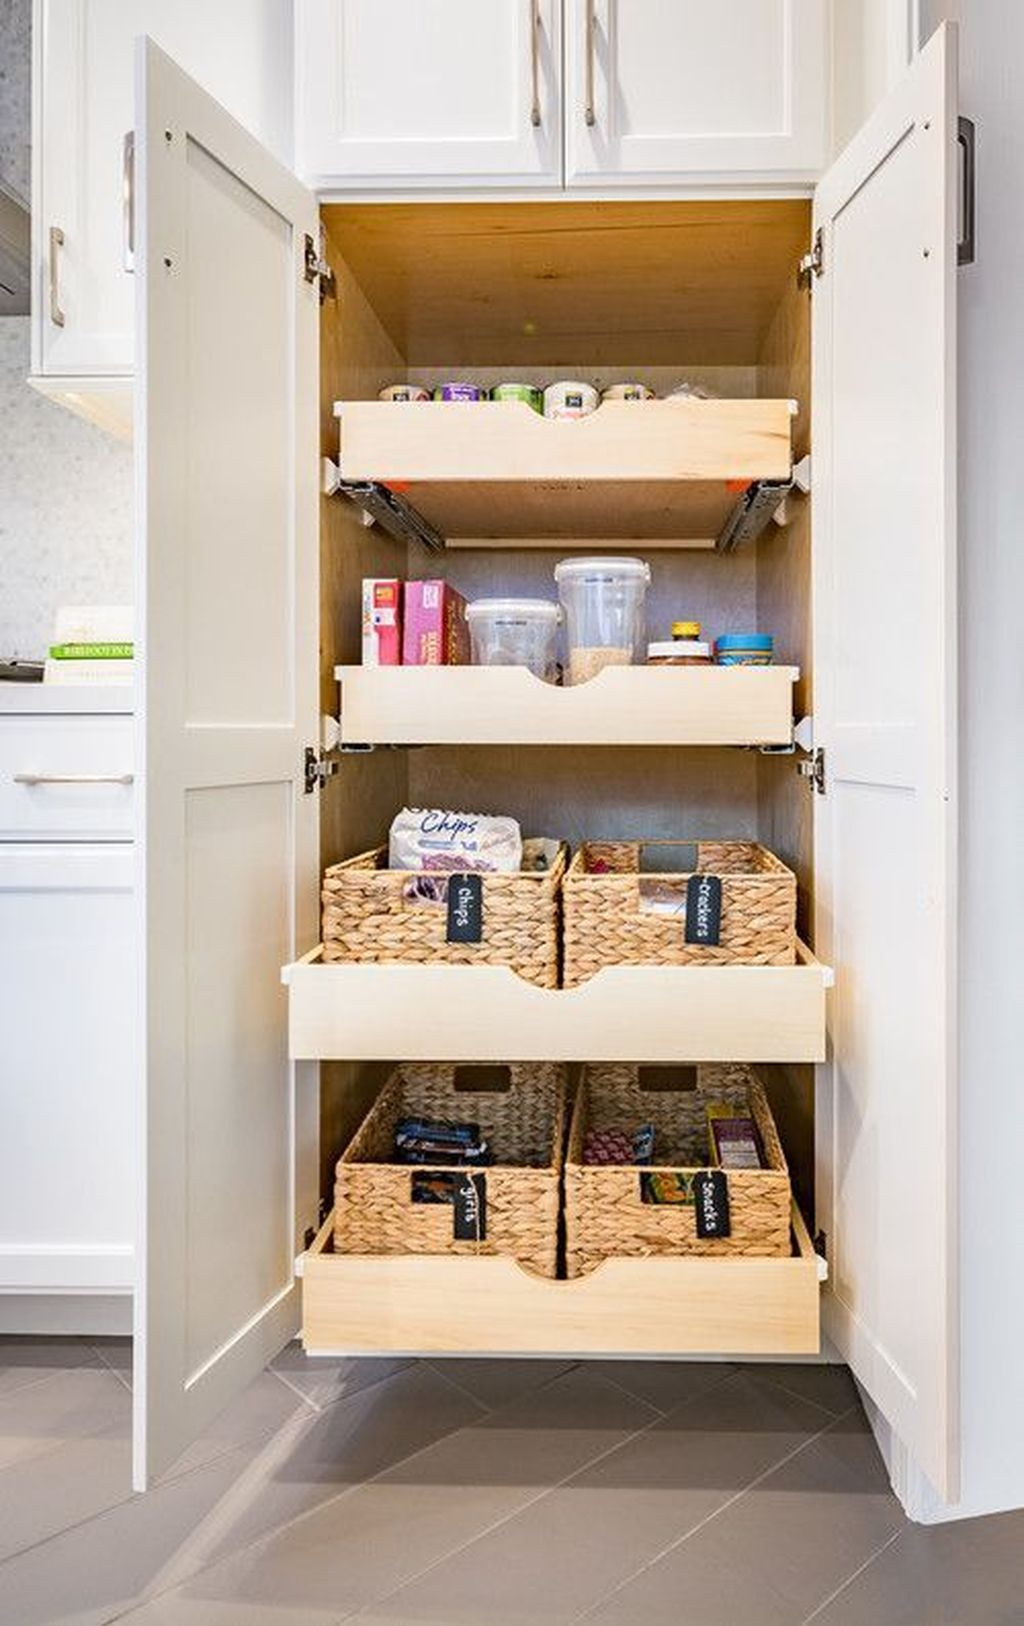 46 lovely kitchen cabinet organization design ideas to try